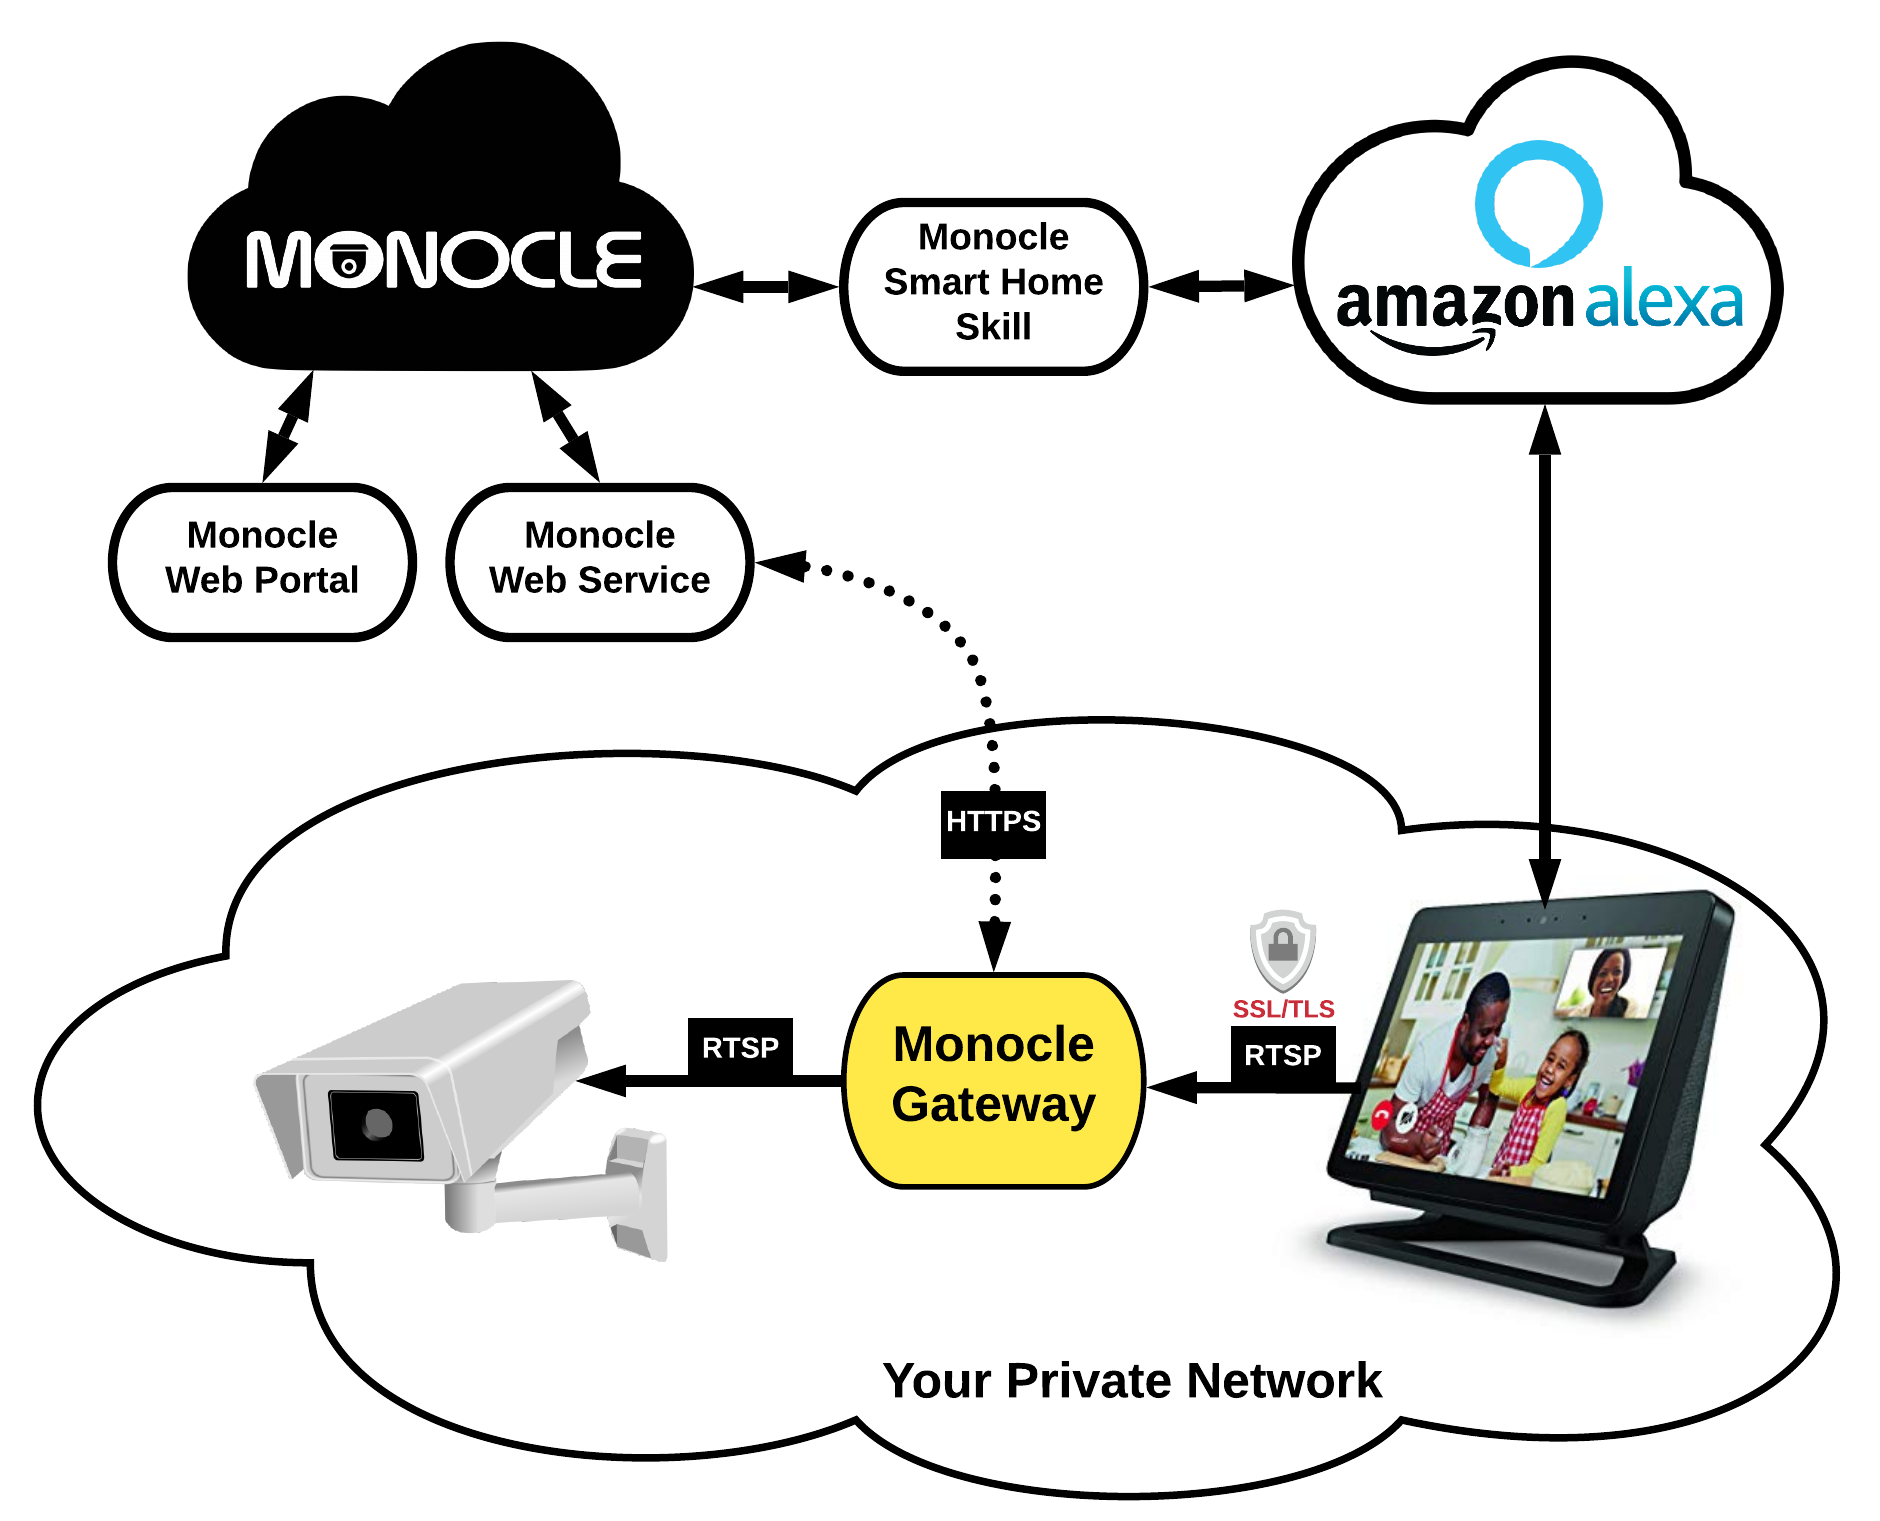 Monocle Gateway | Monocle